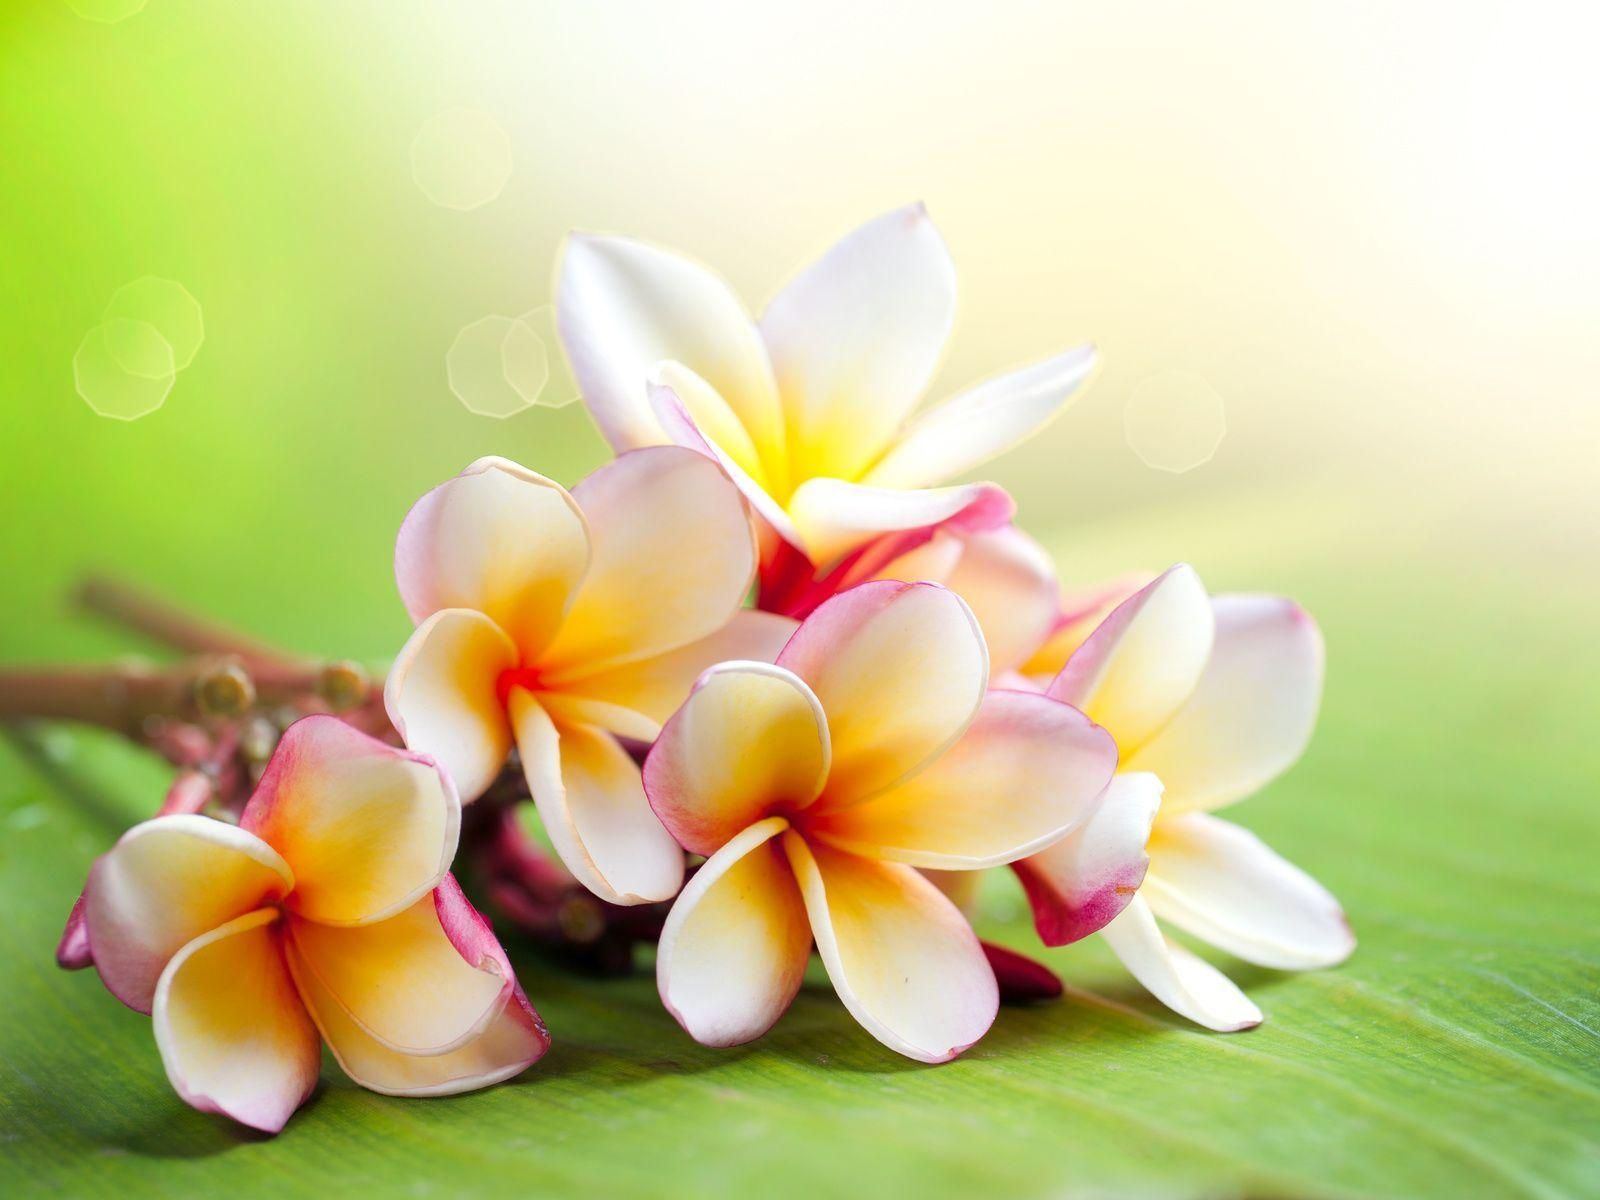 hawaiian flowers wallpapers  wallpaper cave, Beautiful flower